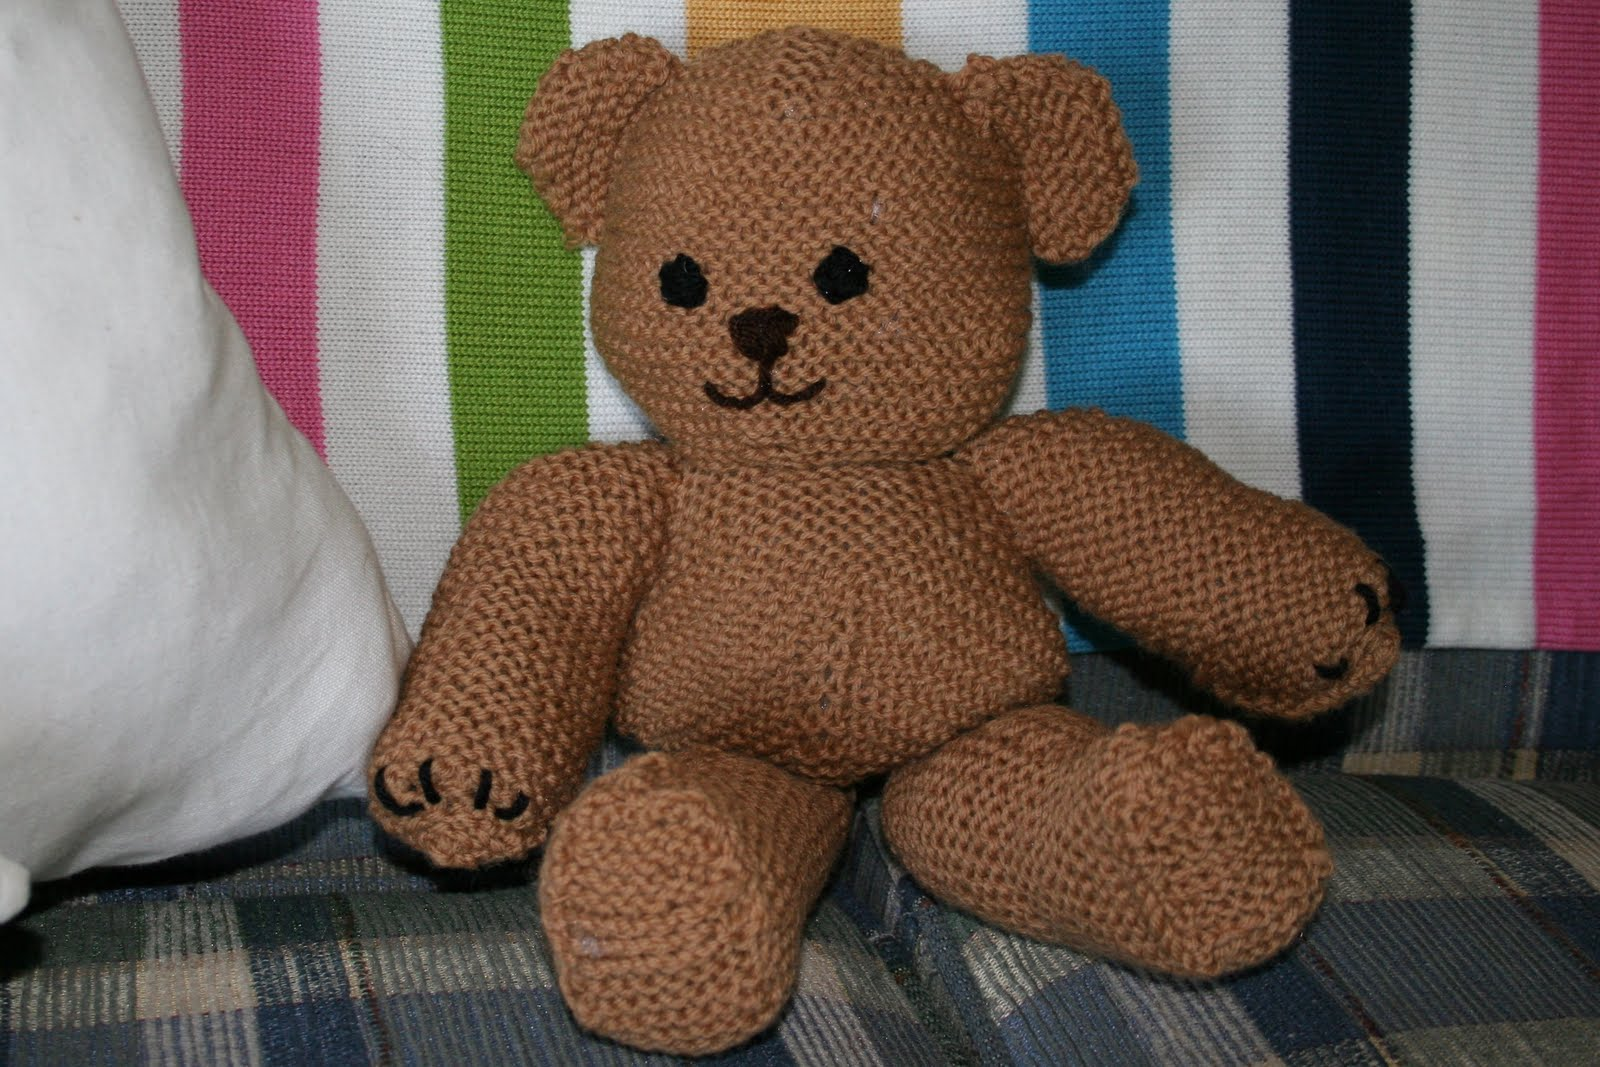 Jumper Knitting Pattern For A Teddy Bear : Teddy Bear Patterns For Free To Knit Sew Or Crochet   USF Bloggers Planet